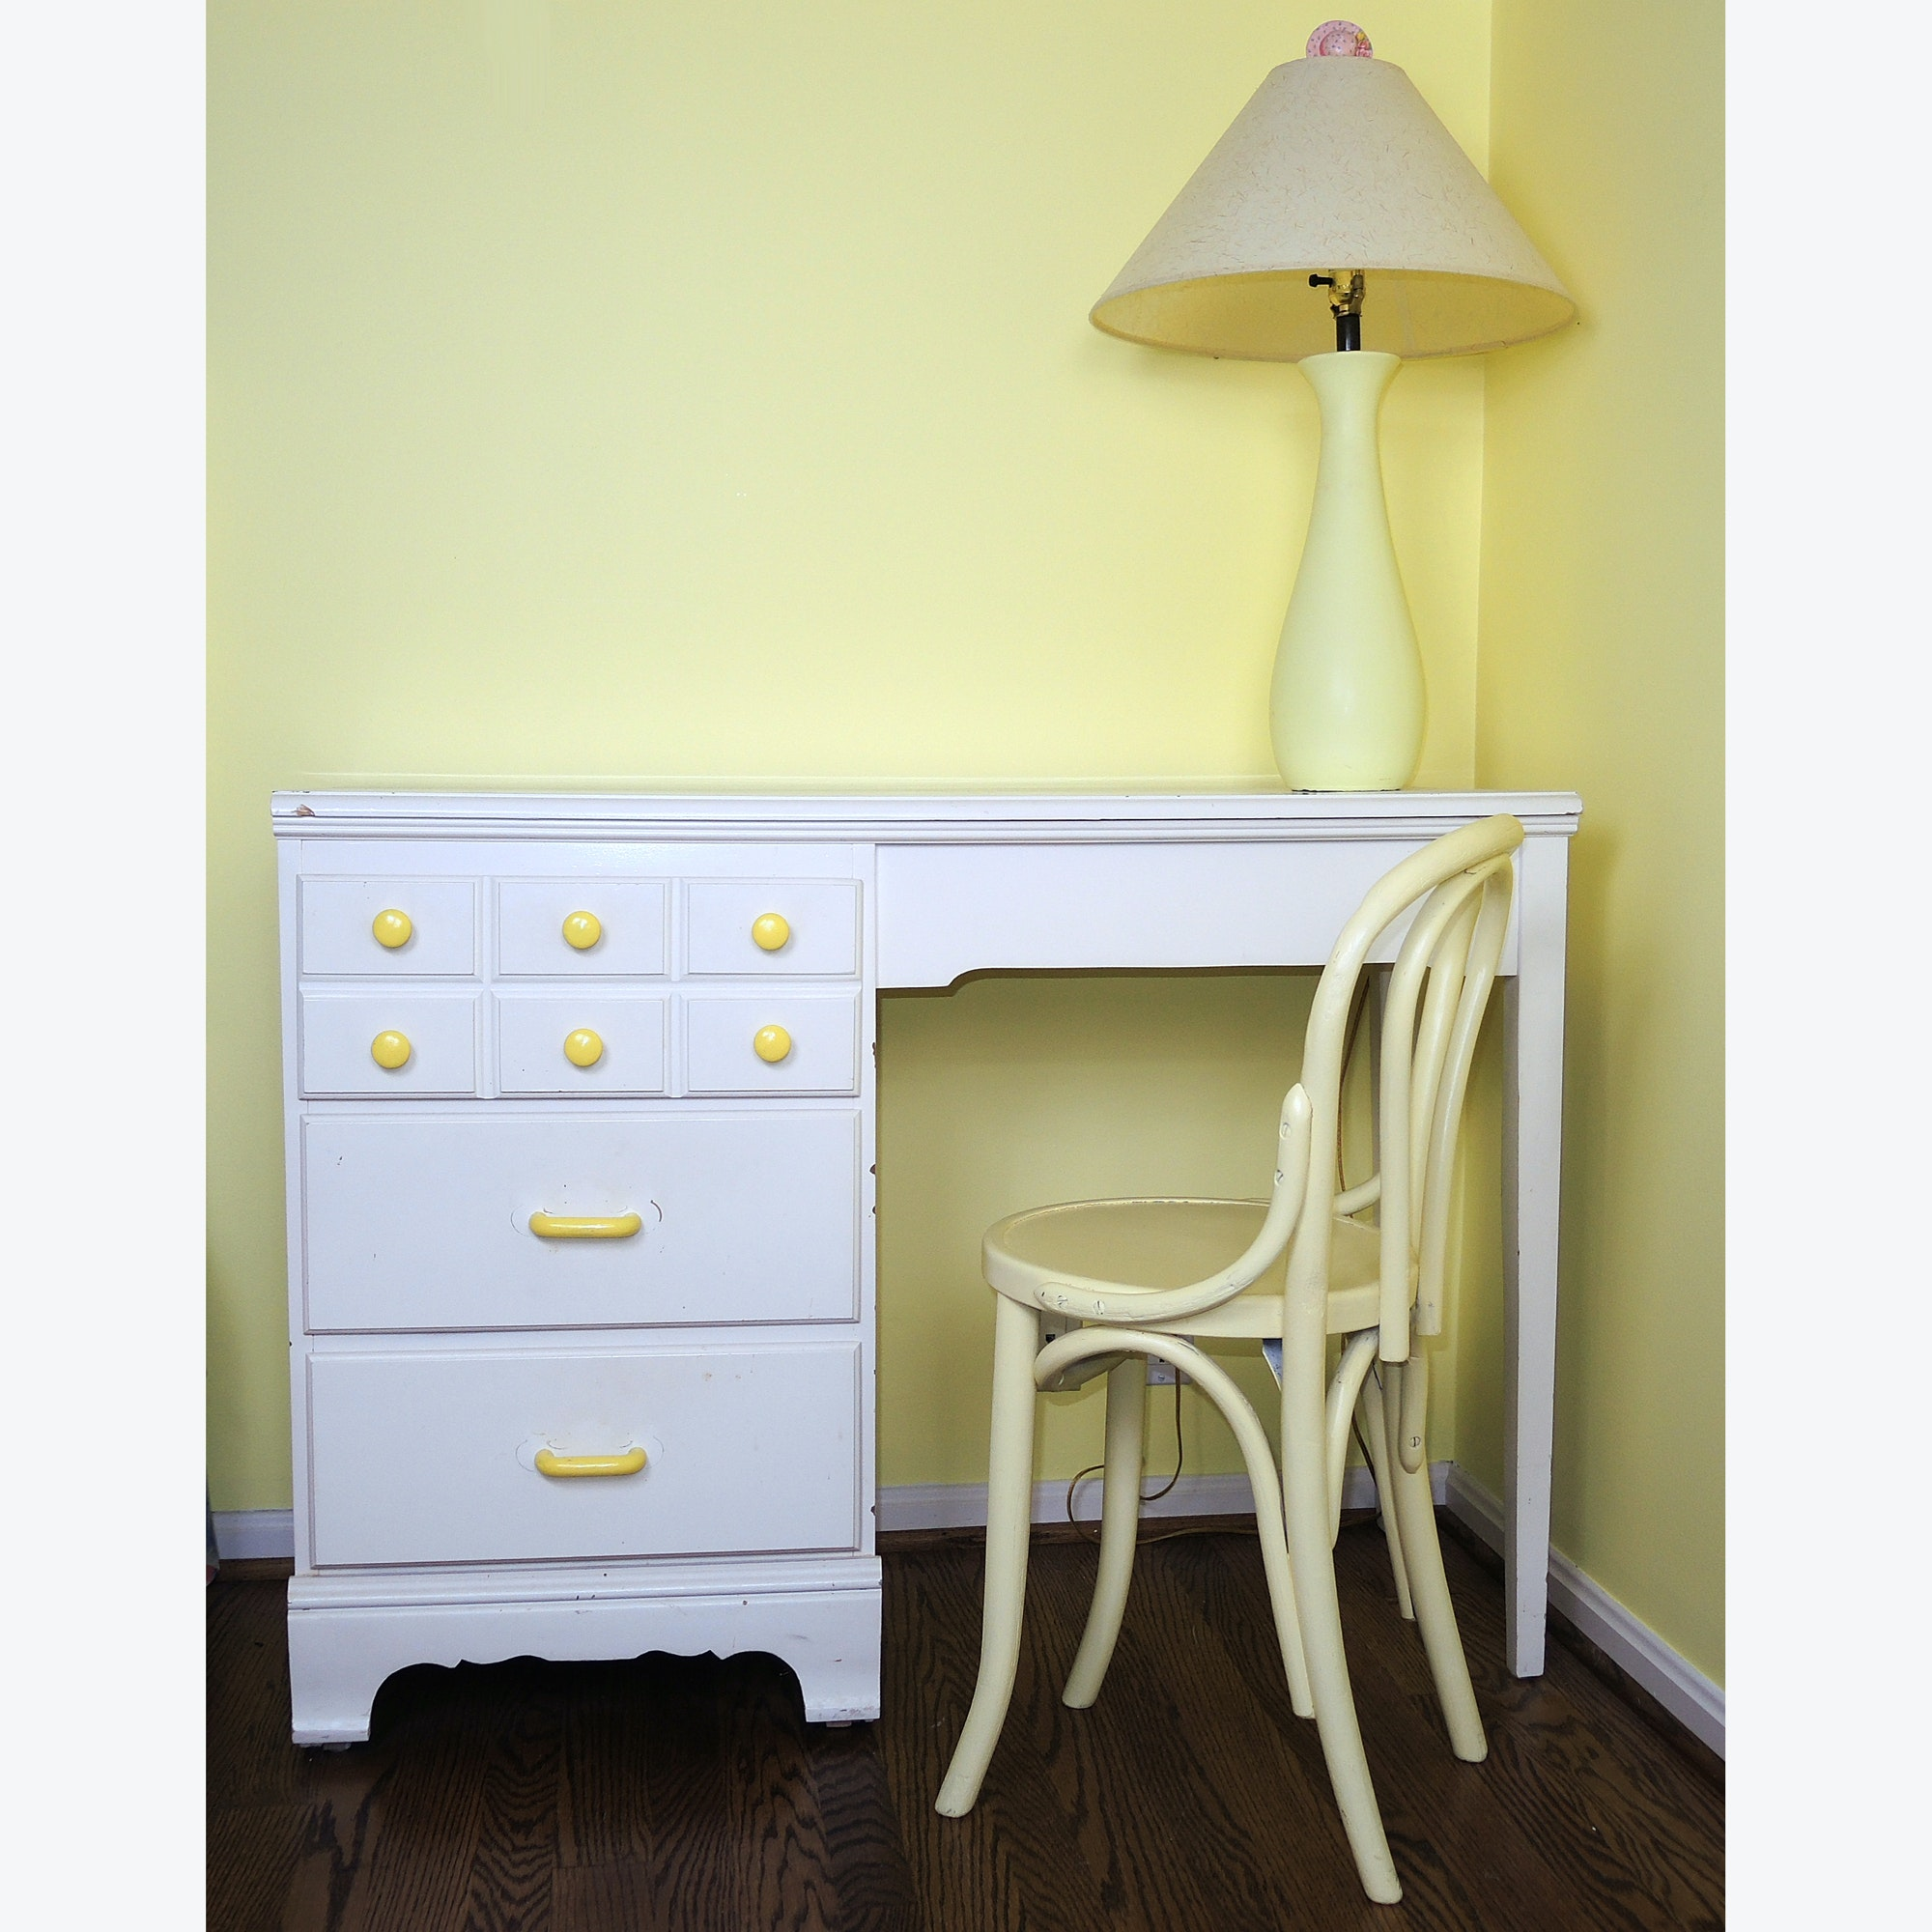 Small White Children's Desk with Chair and Lamp